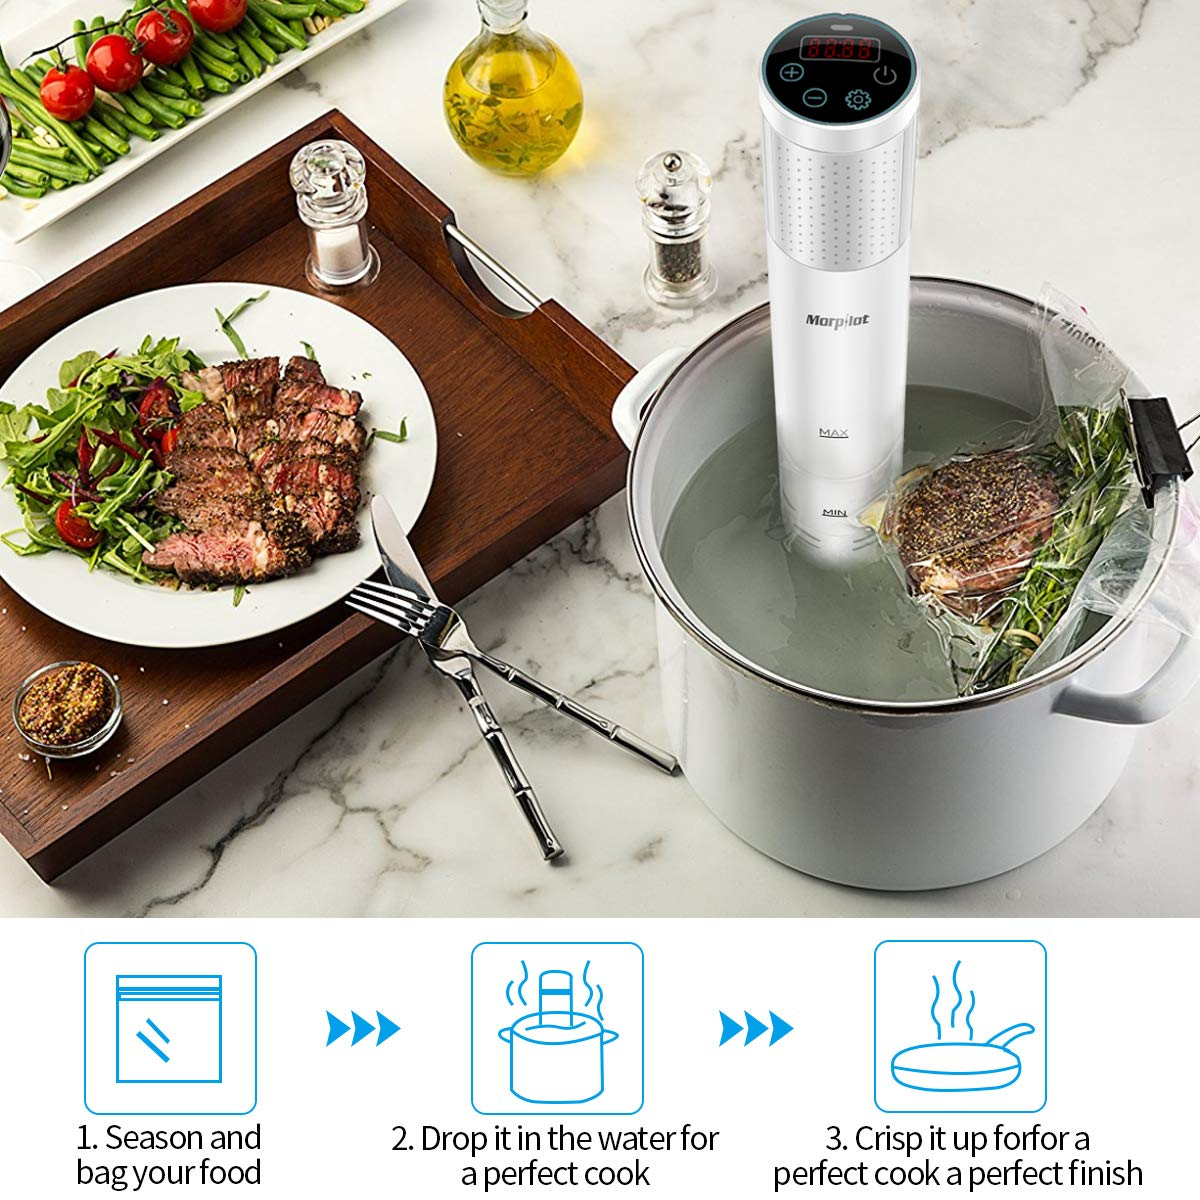 morpilot®Sous Vide Garer-Sous Vide Stick Immersion Tauchzikulator, LCD Touch Display, 1200W, 0-90°C Temperaturbereich, 3D-Circulation (mit Kochbuch)